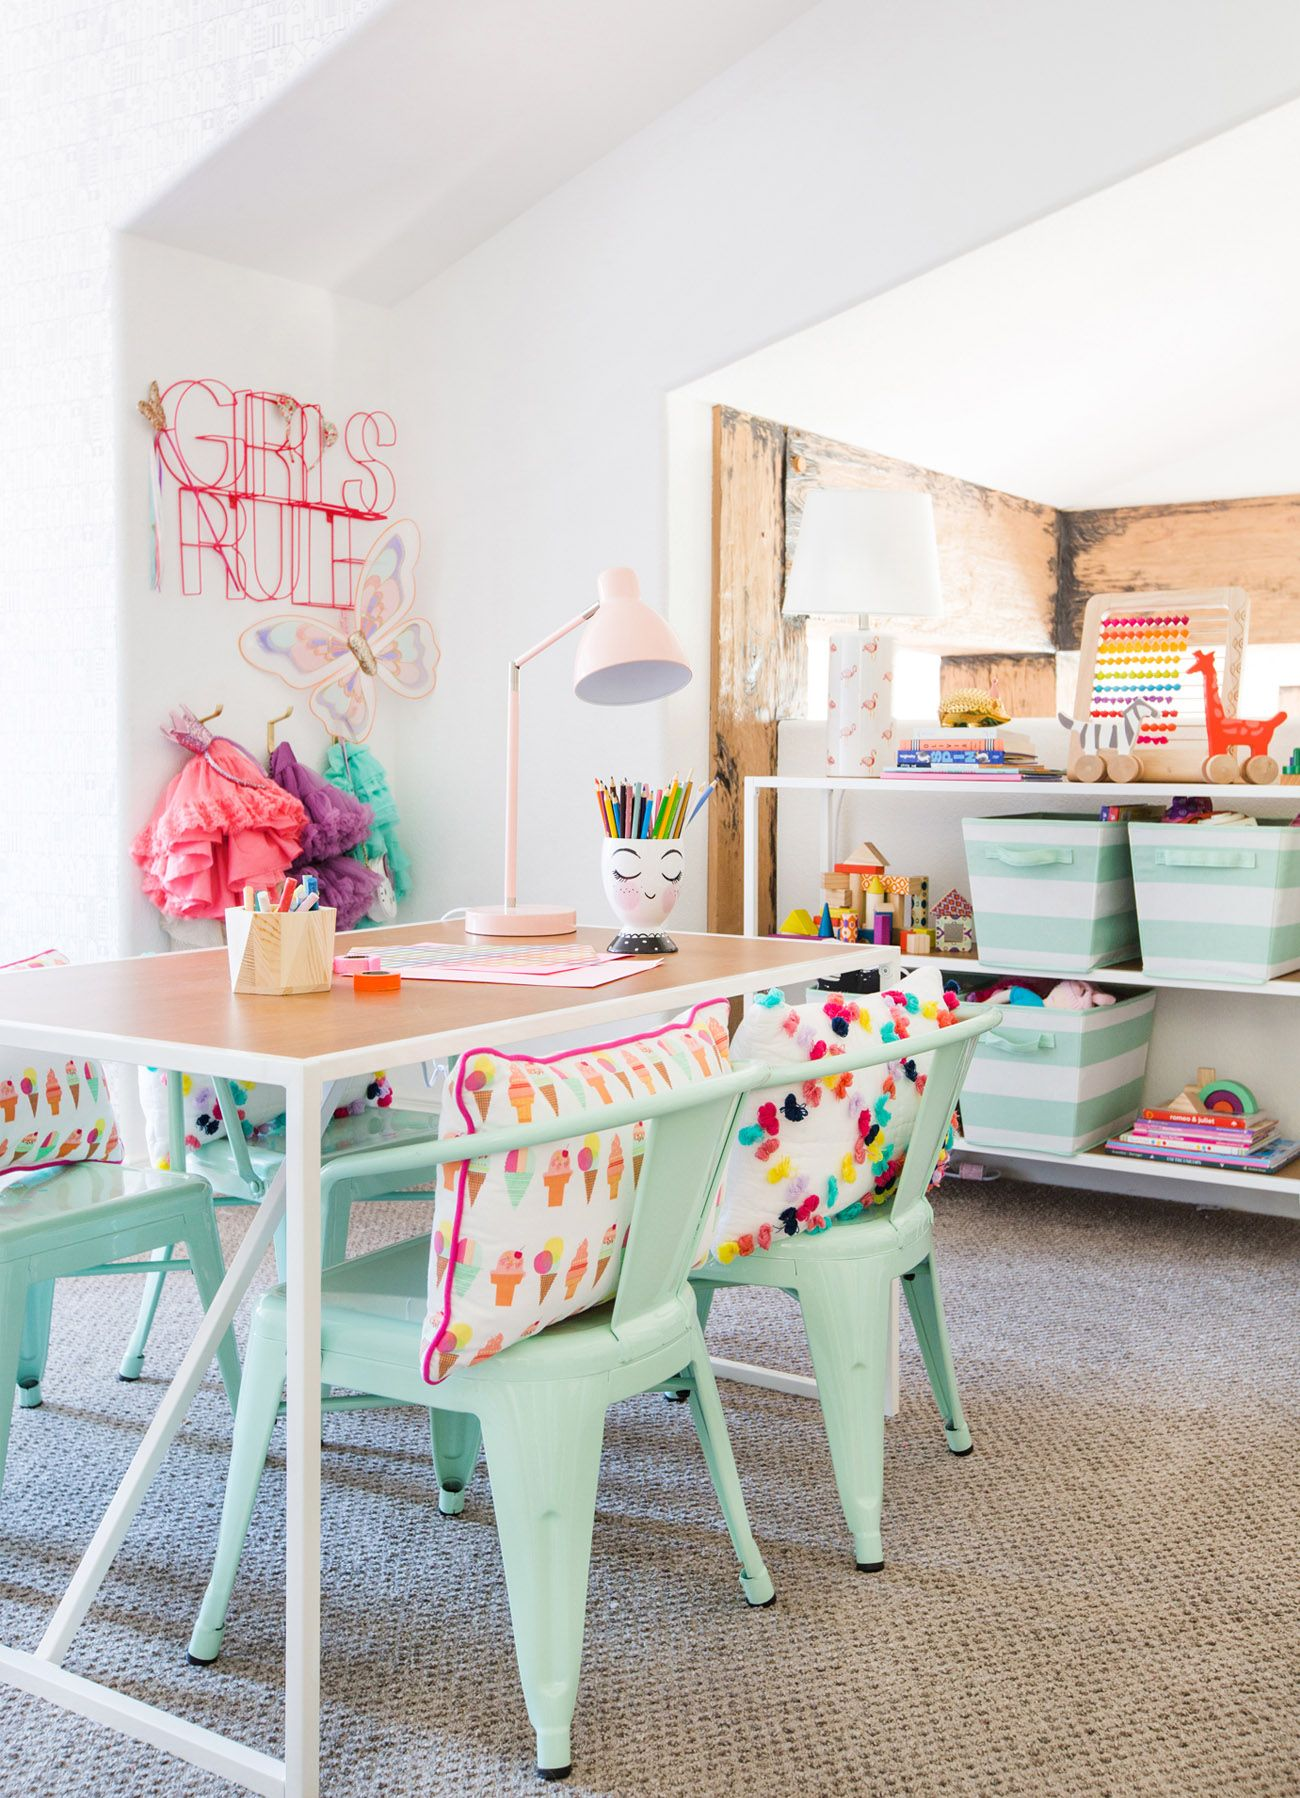 A Playroom With Target Pillowfort Emily Henderson Green Wedding Shoes Colorful Kids Room Colorful Playroom Playroom Decor